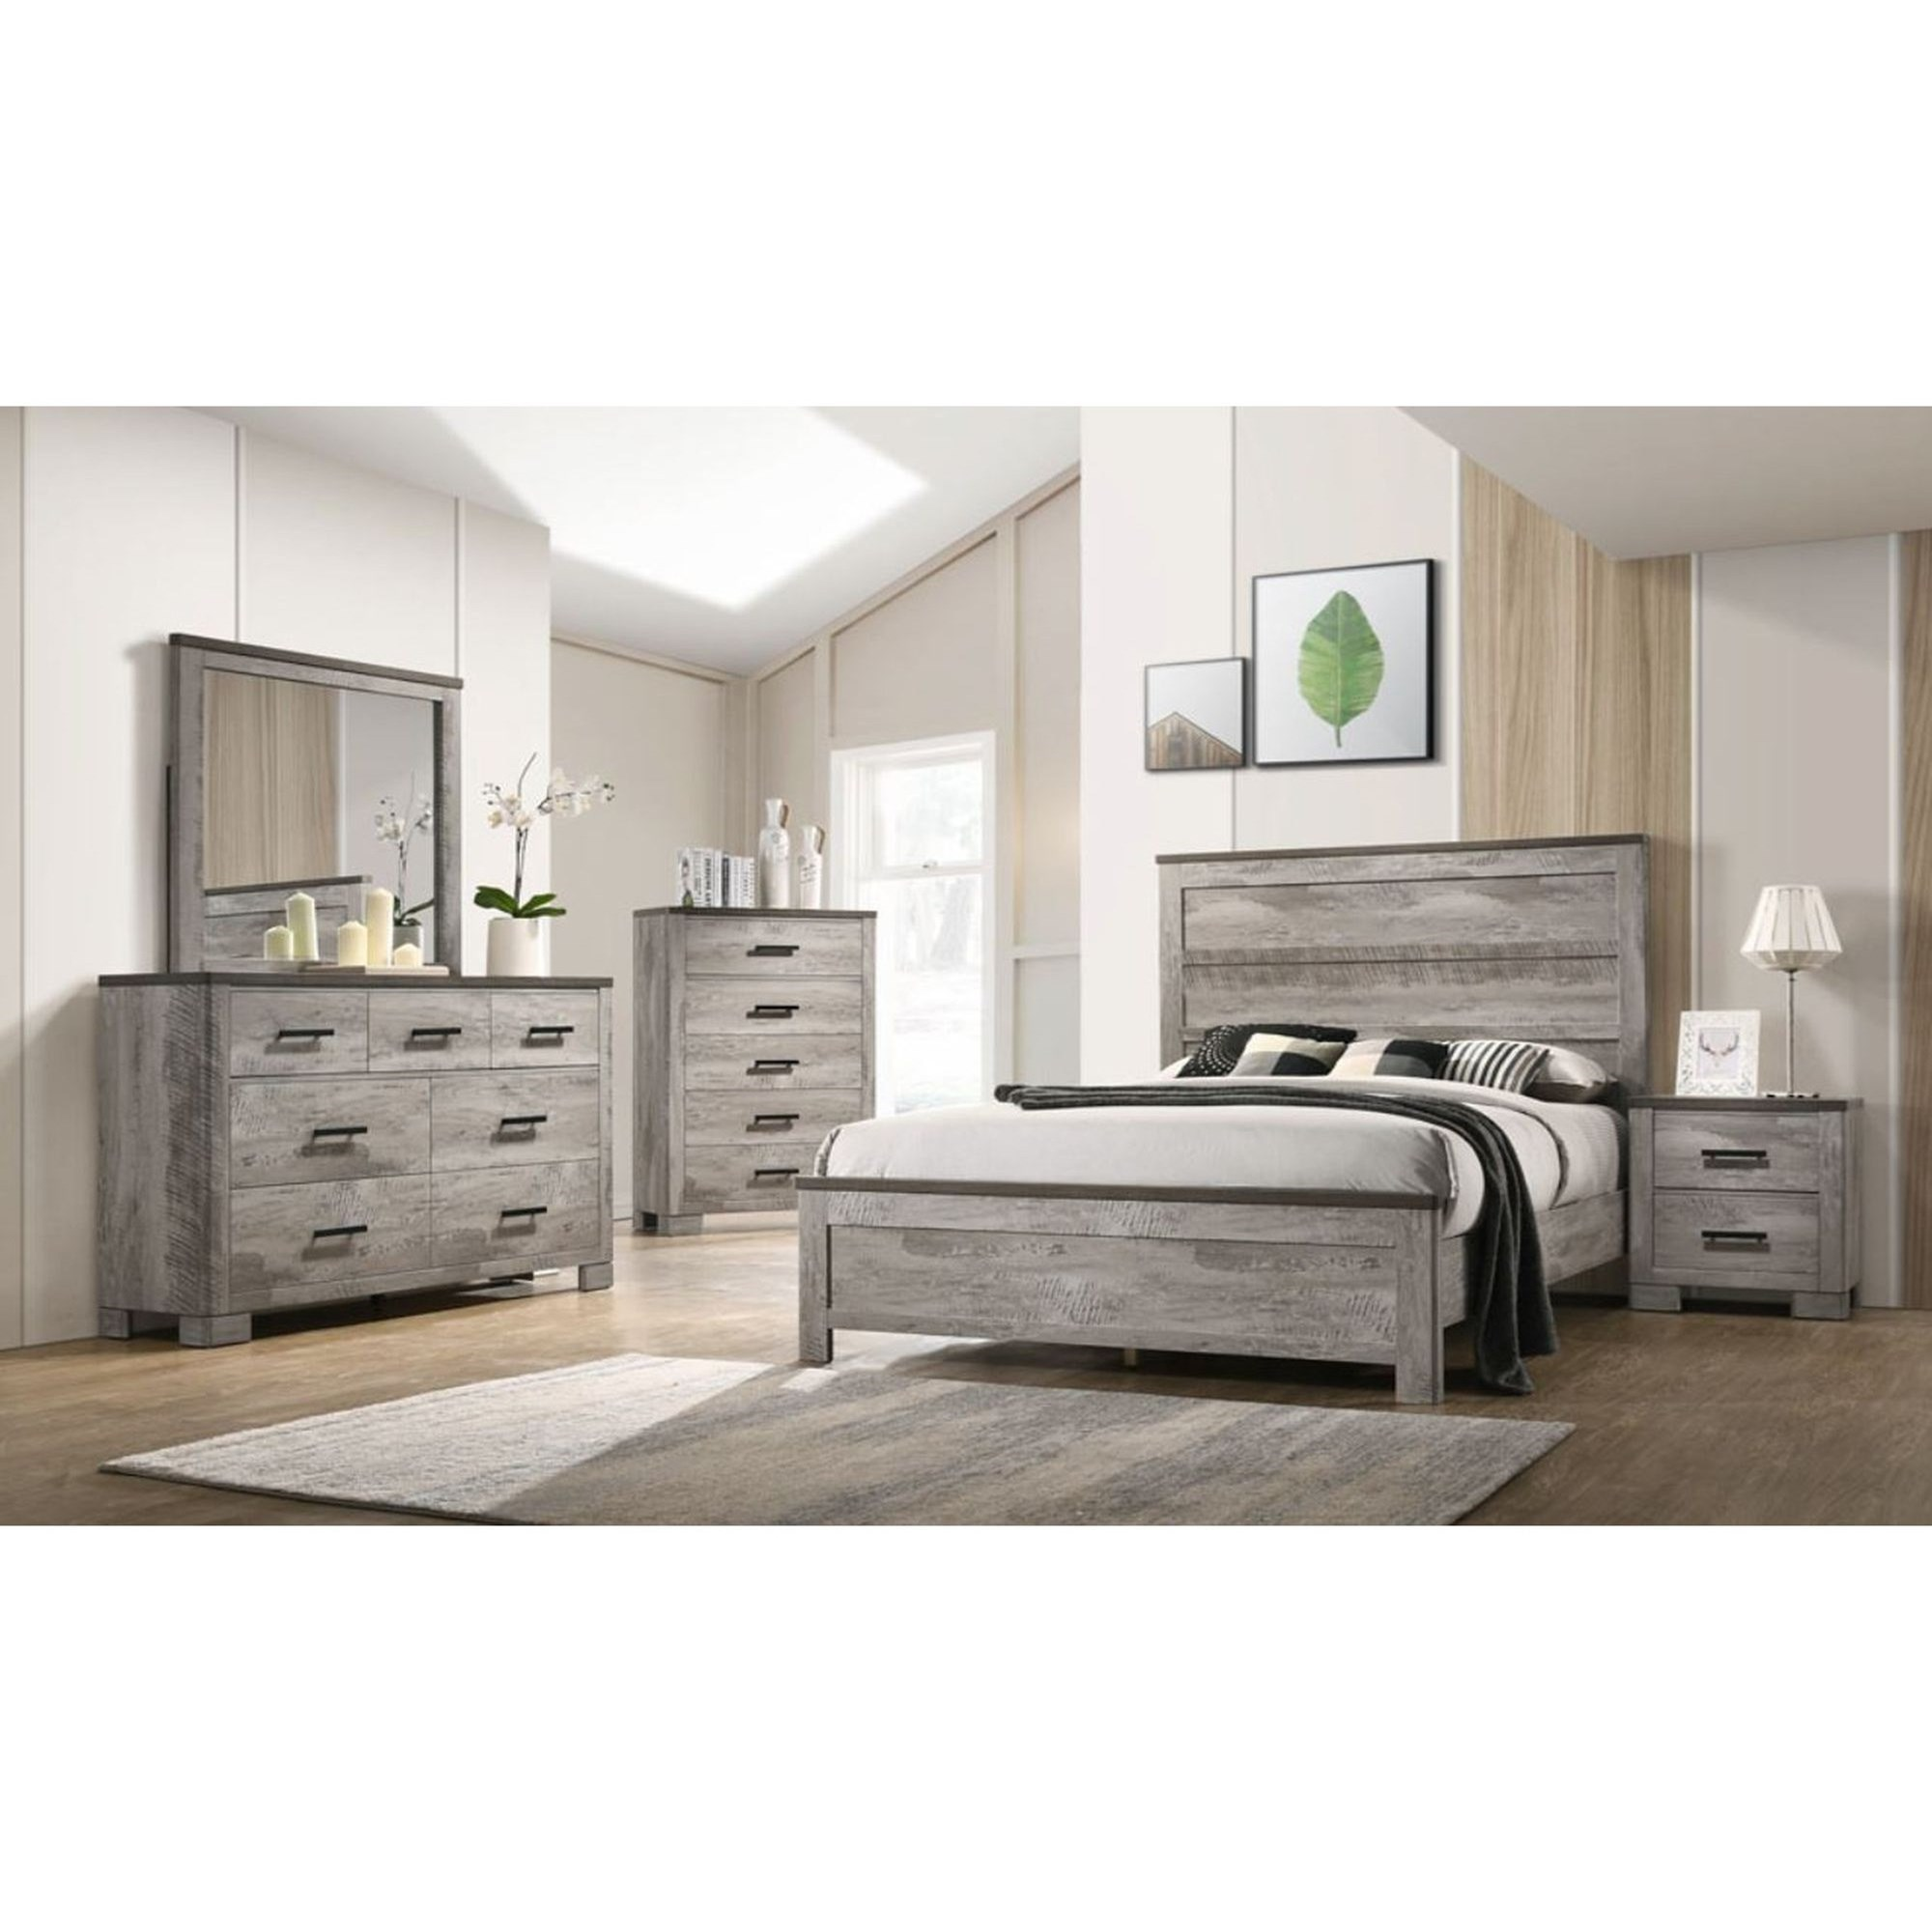 Millers Cove Full Bedroom Group by Elements International at Wilcox Furniture